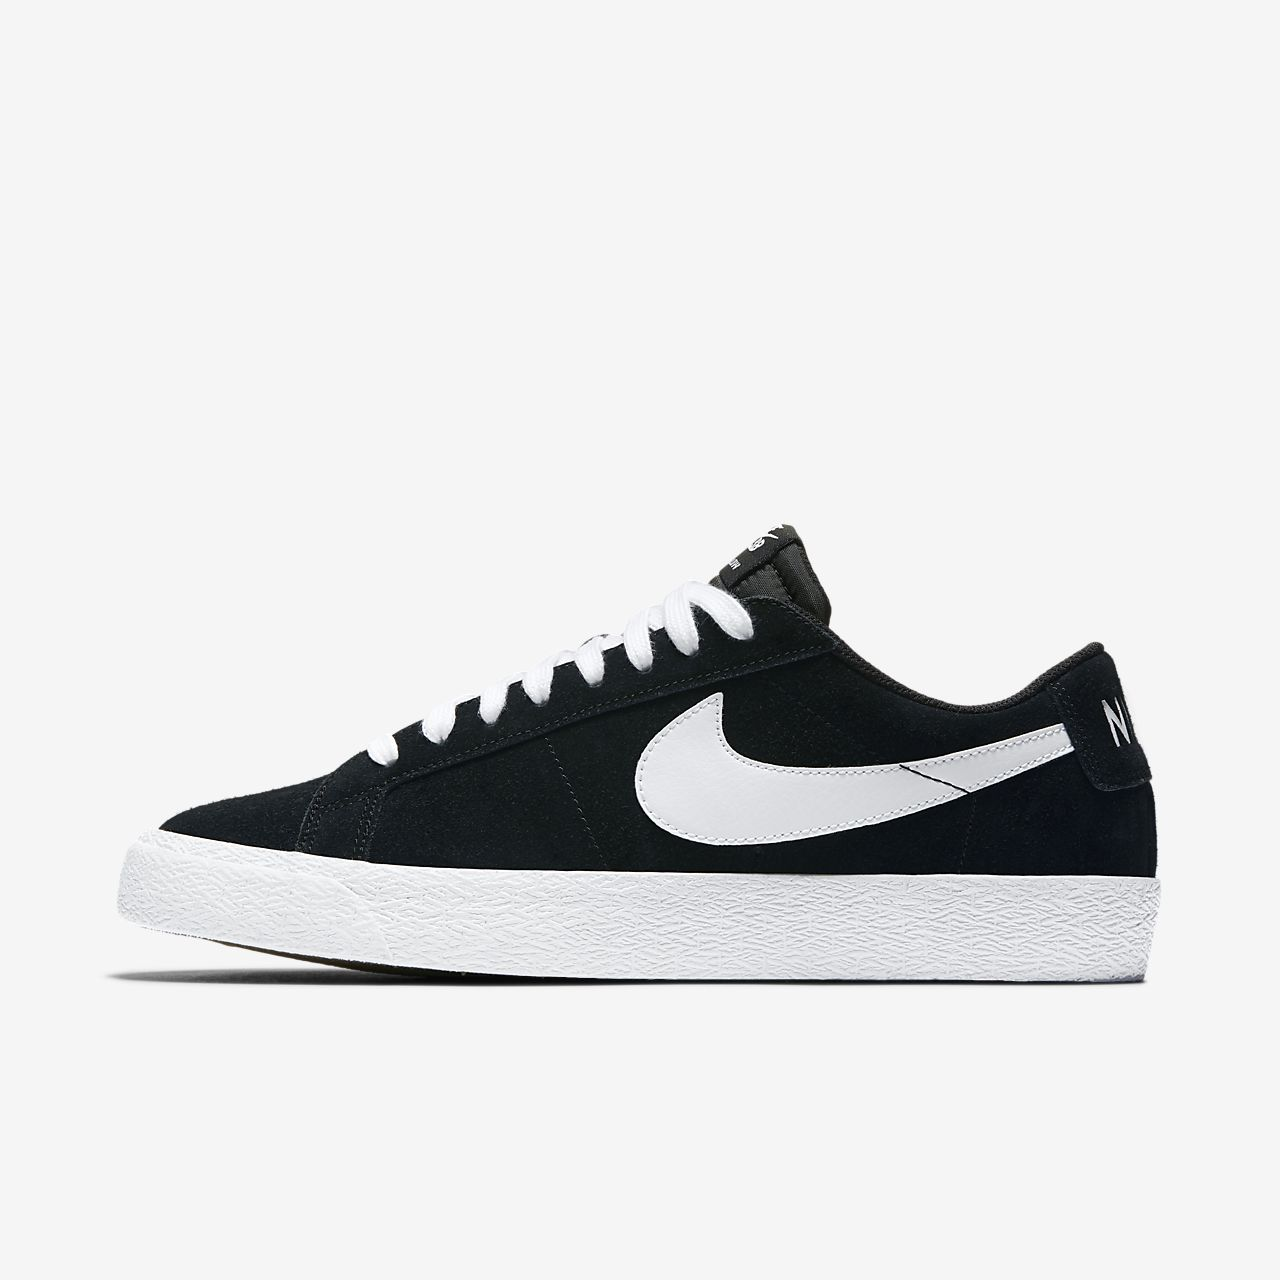 dba493ad43cb Nike SB Blazer Zoom Low Men s Skateboarding Shoe. Nike.com GB